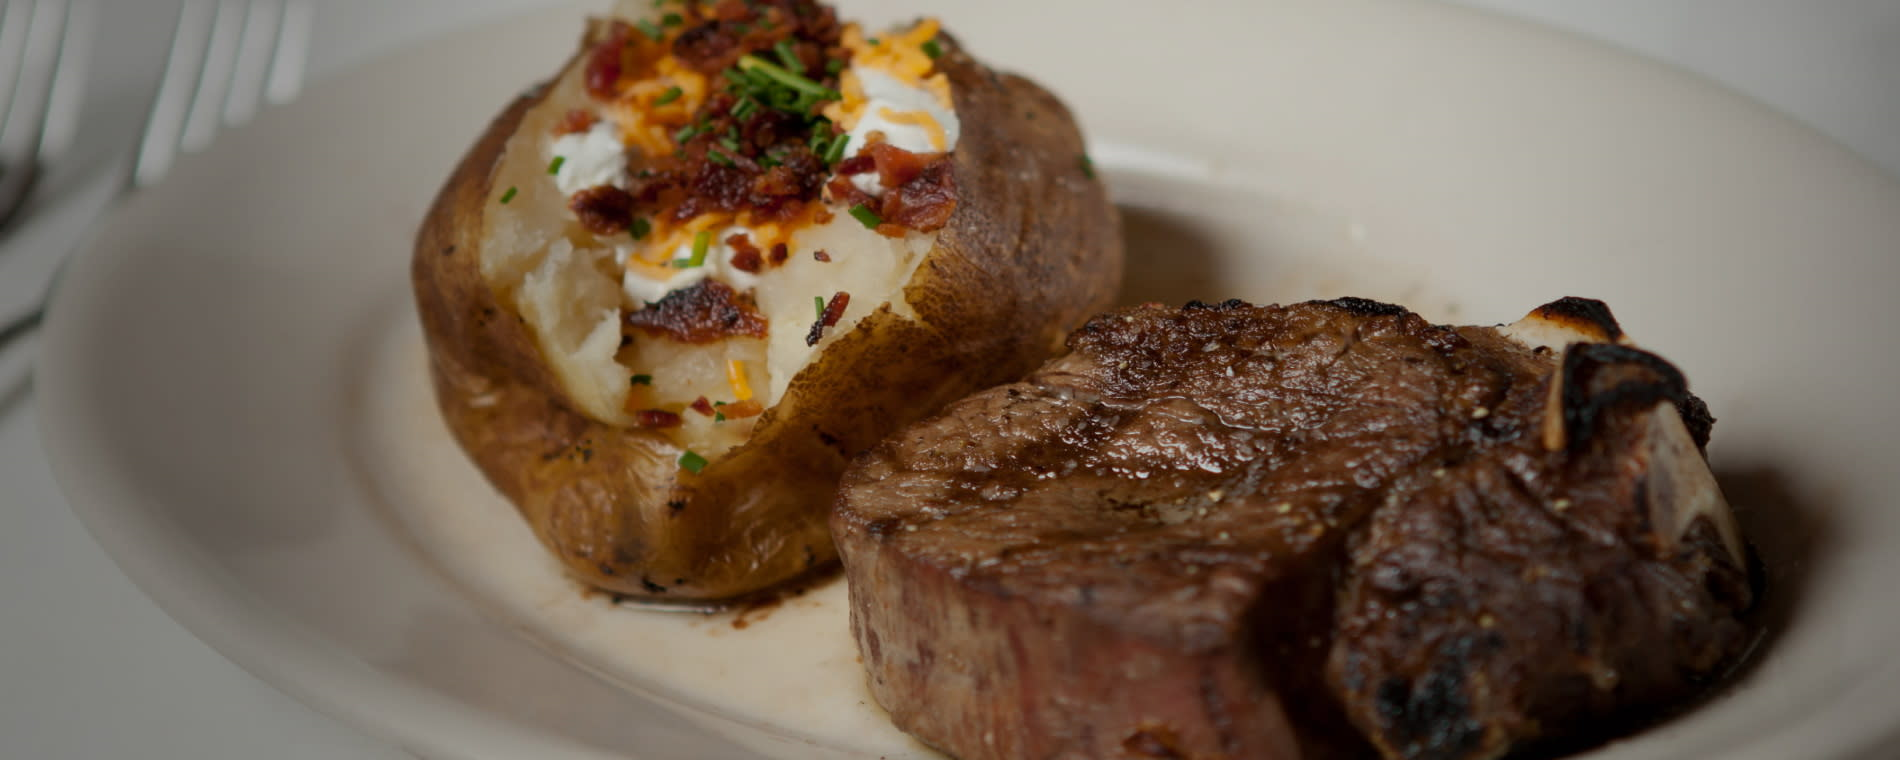 Greystone Restaurant steak potato